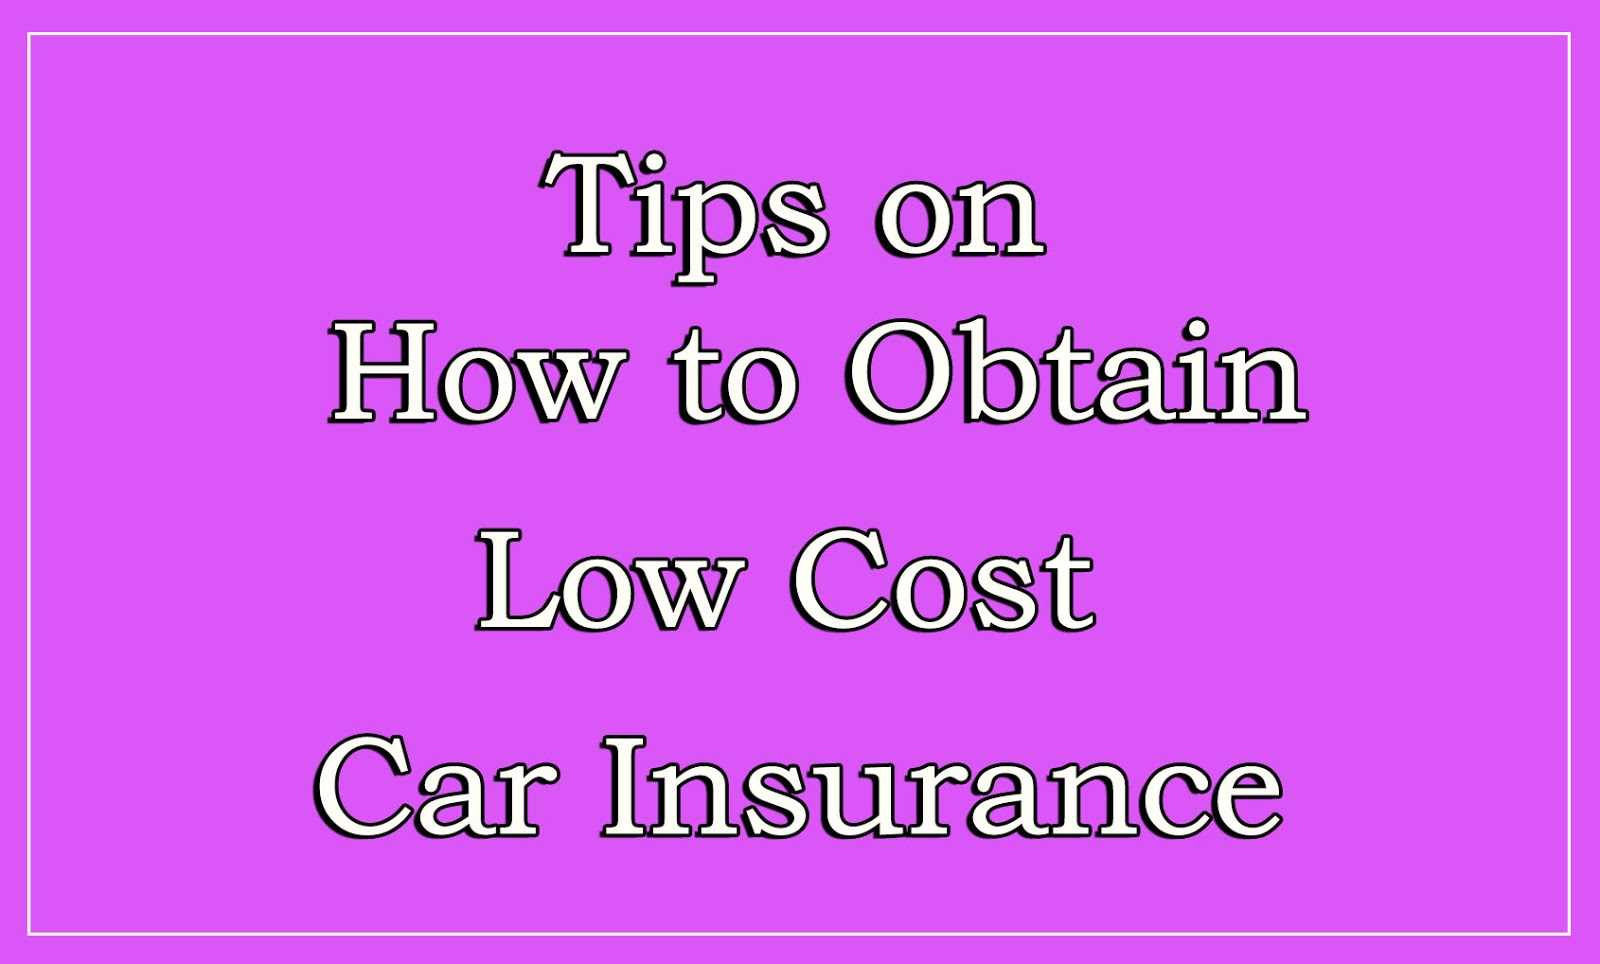 Low Cost Auto Insurance >> Tips On How To Obtain Low Cost Auto Insurance